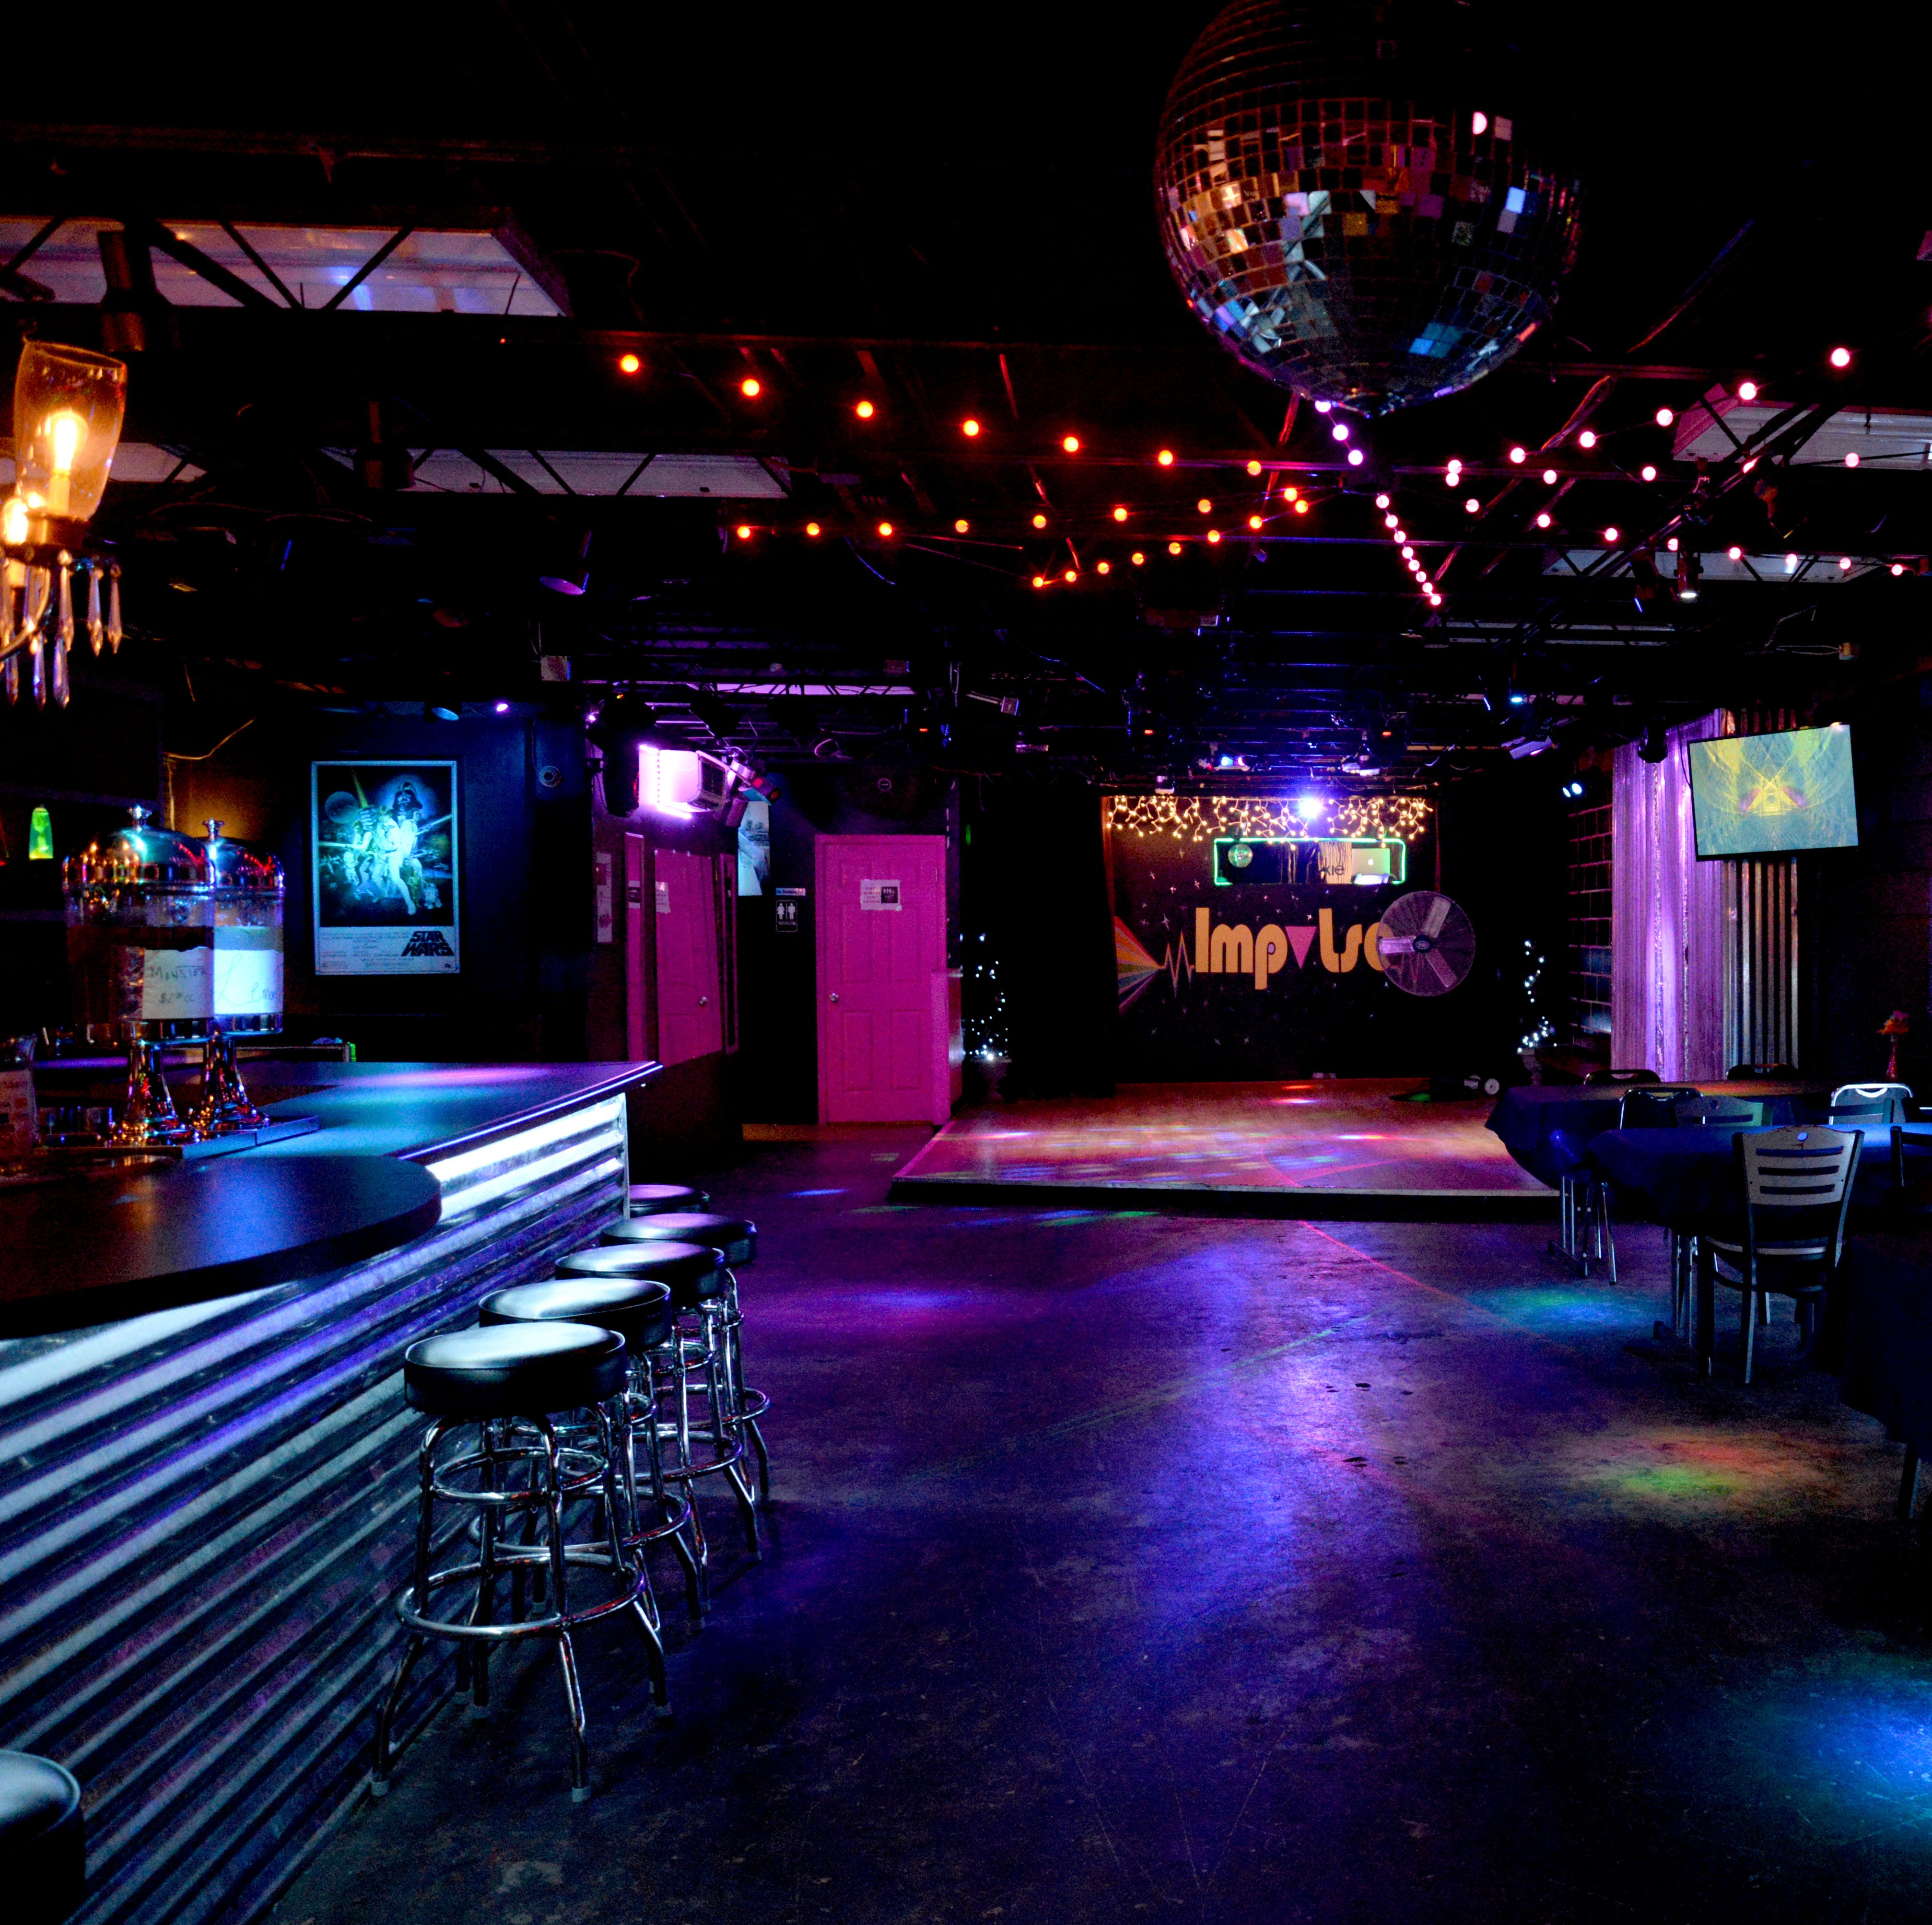 Social club provides a safe space for the gay community